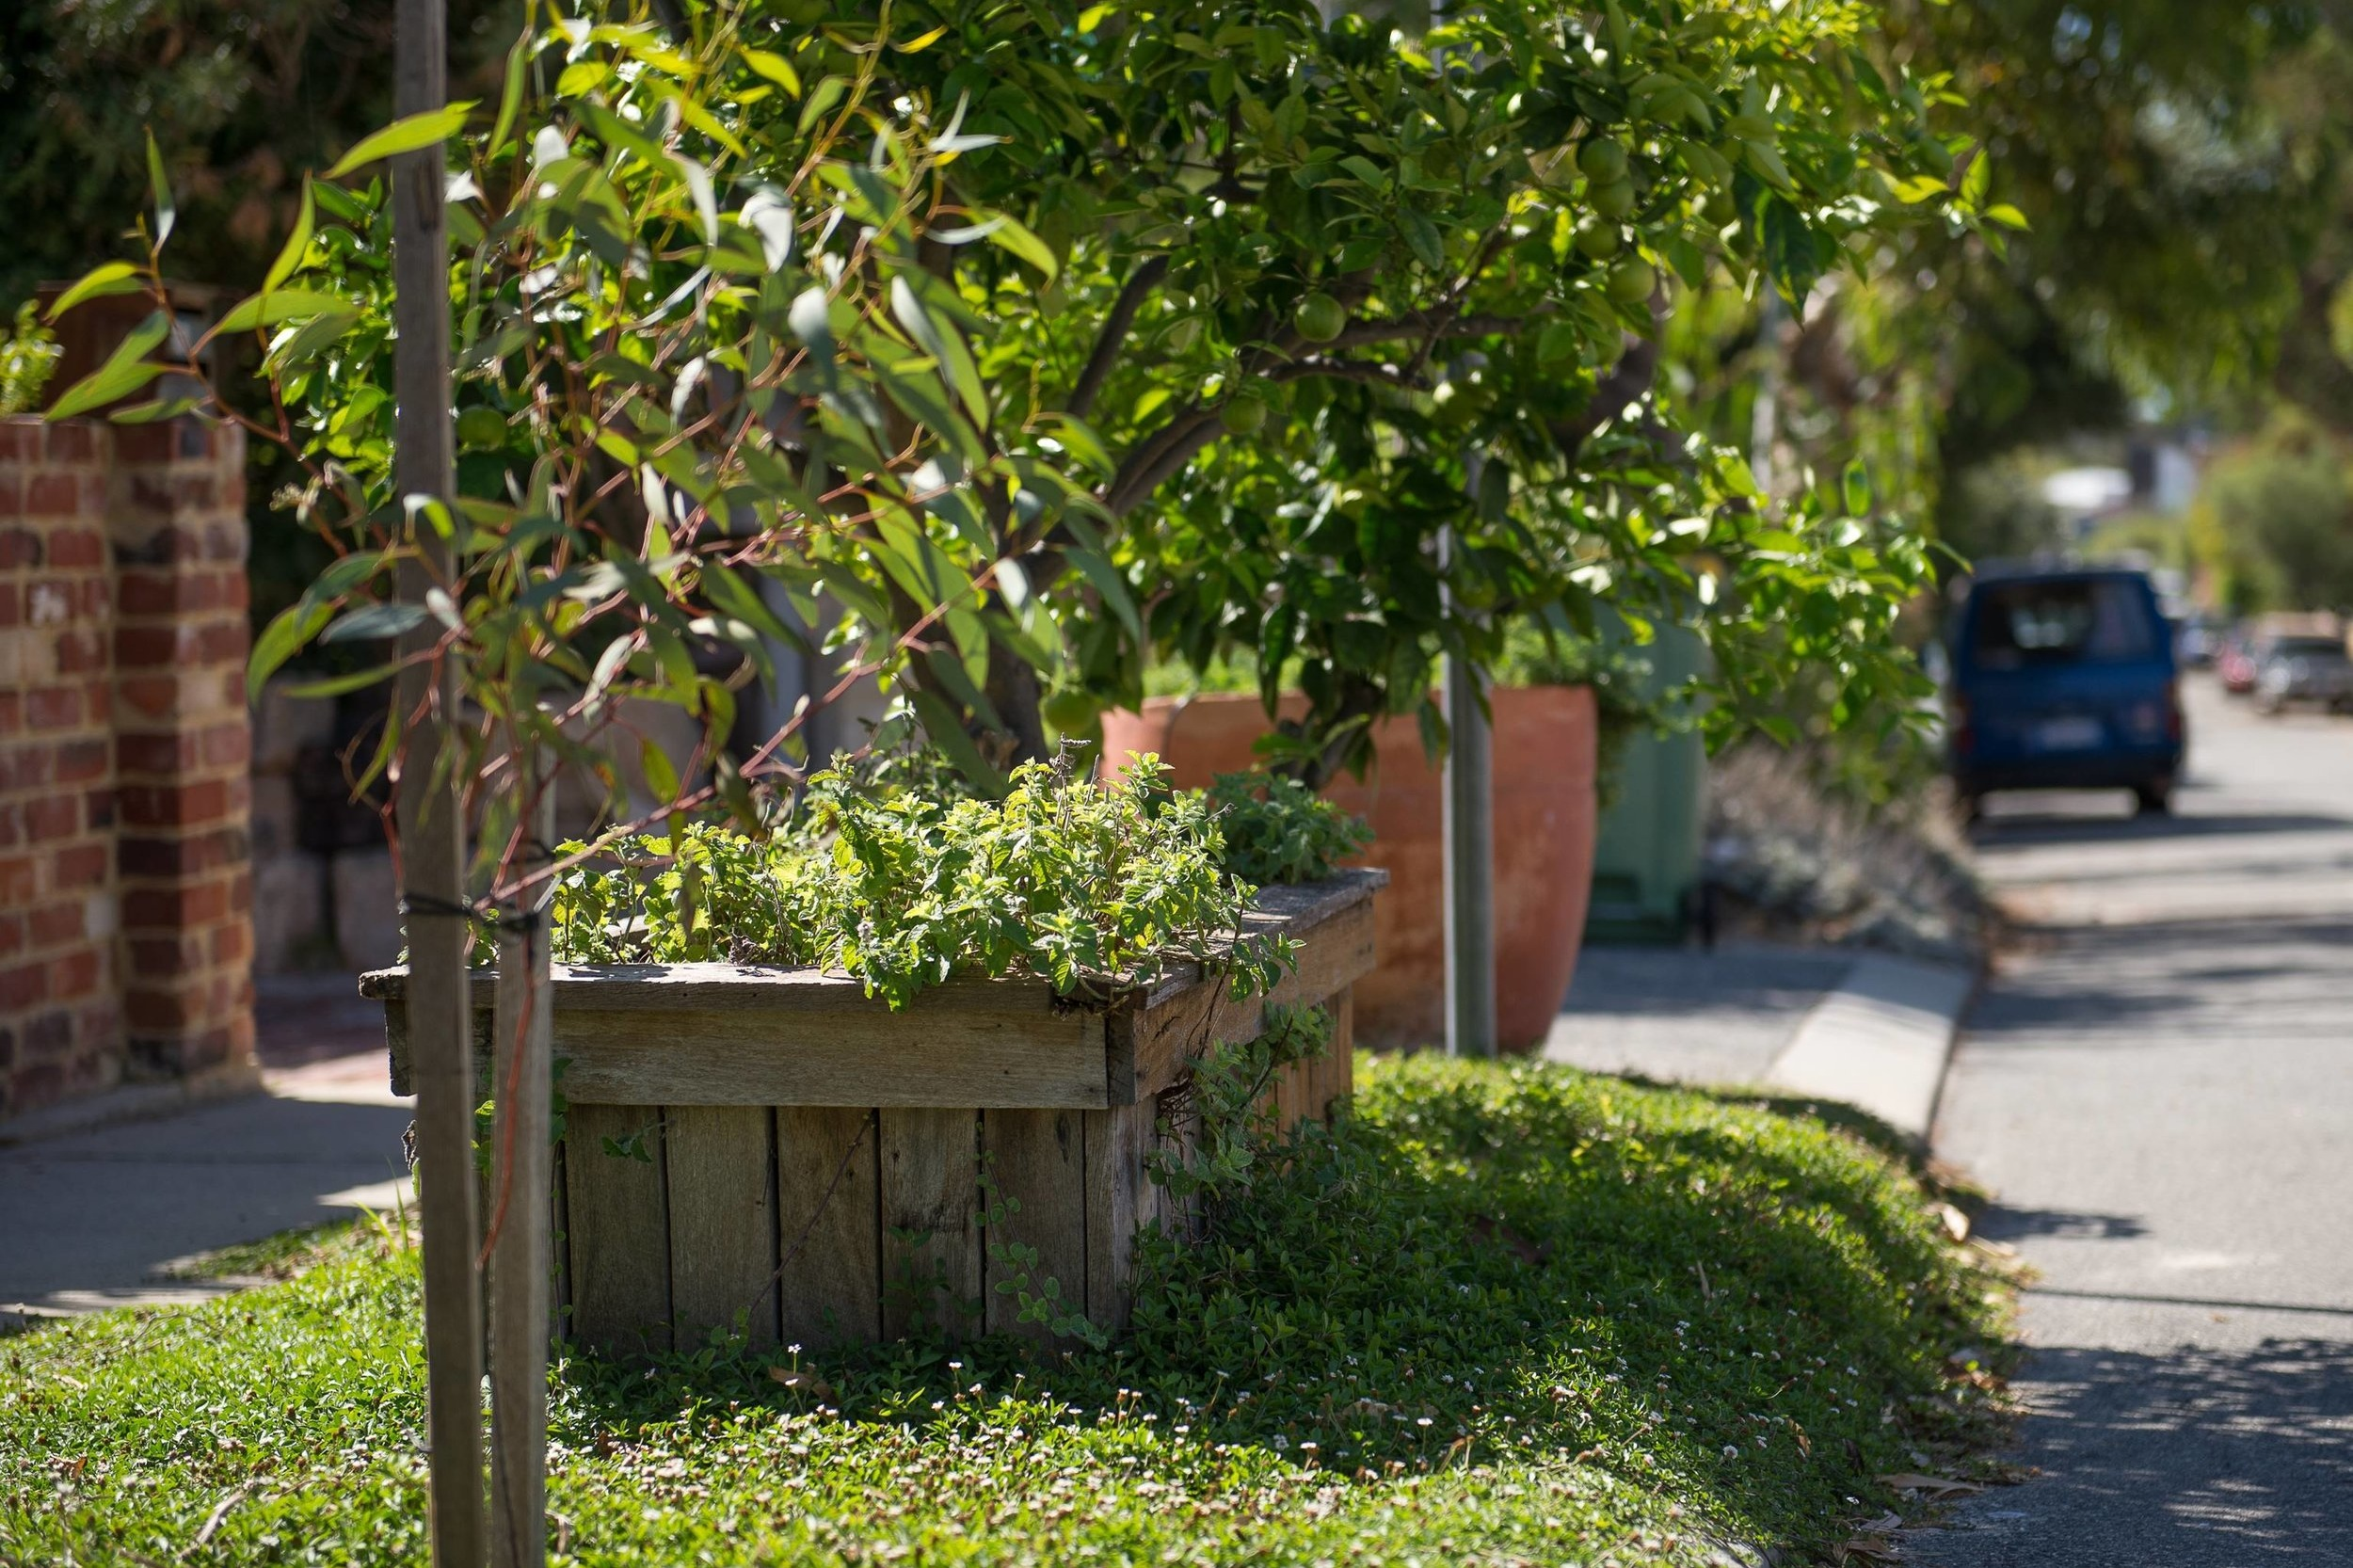 Fremantle provides resources to residents to establish verge gardens